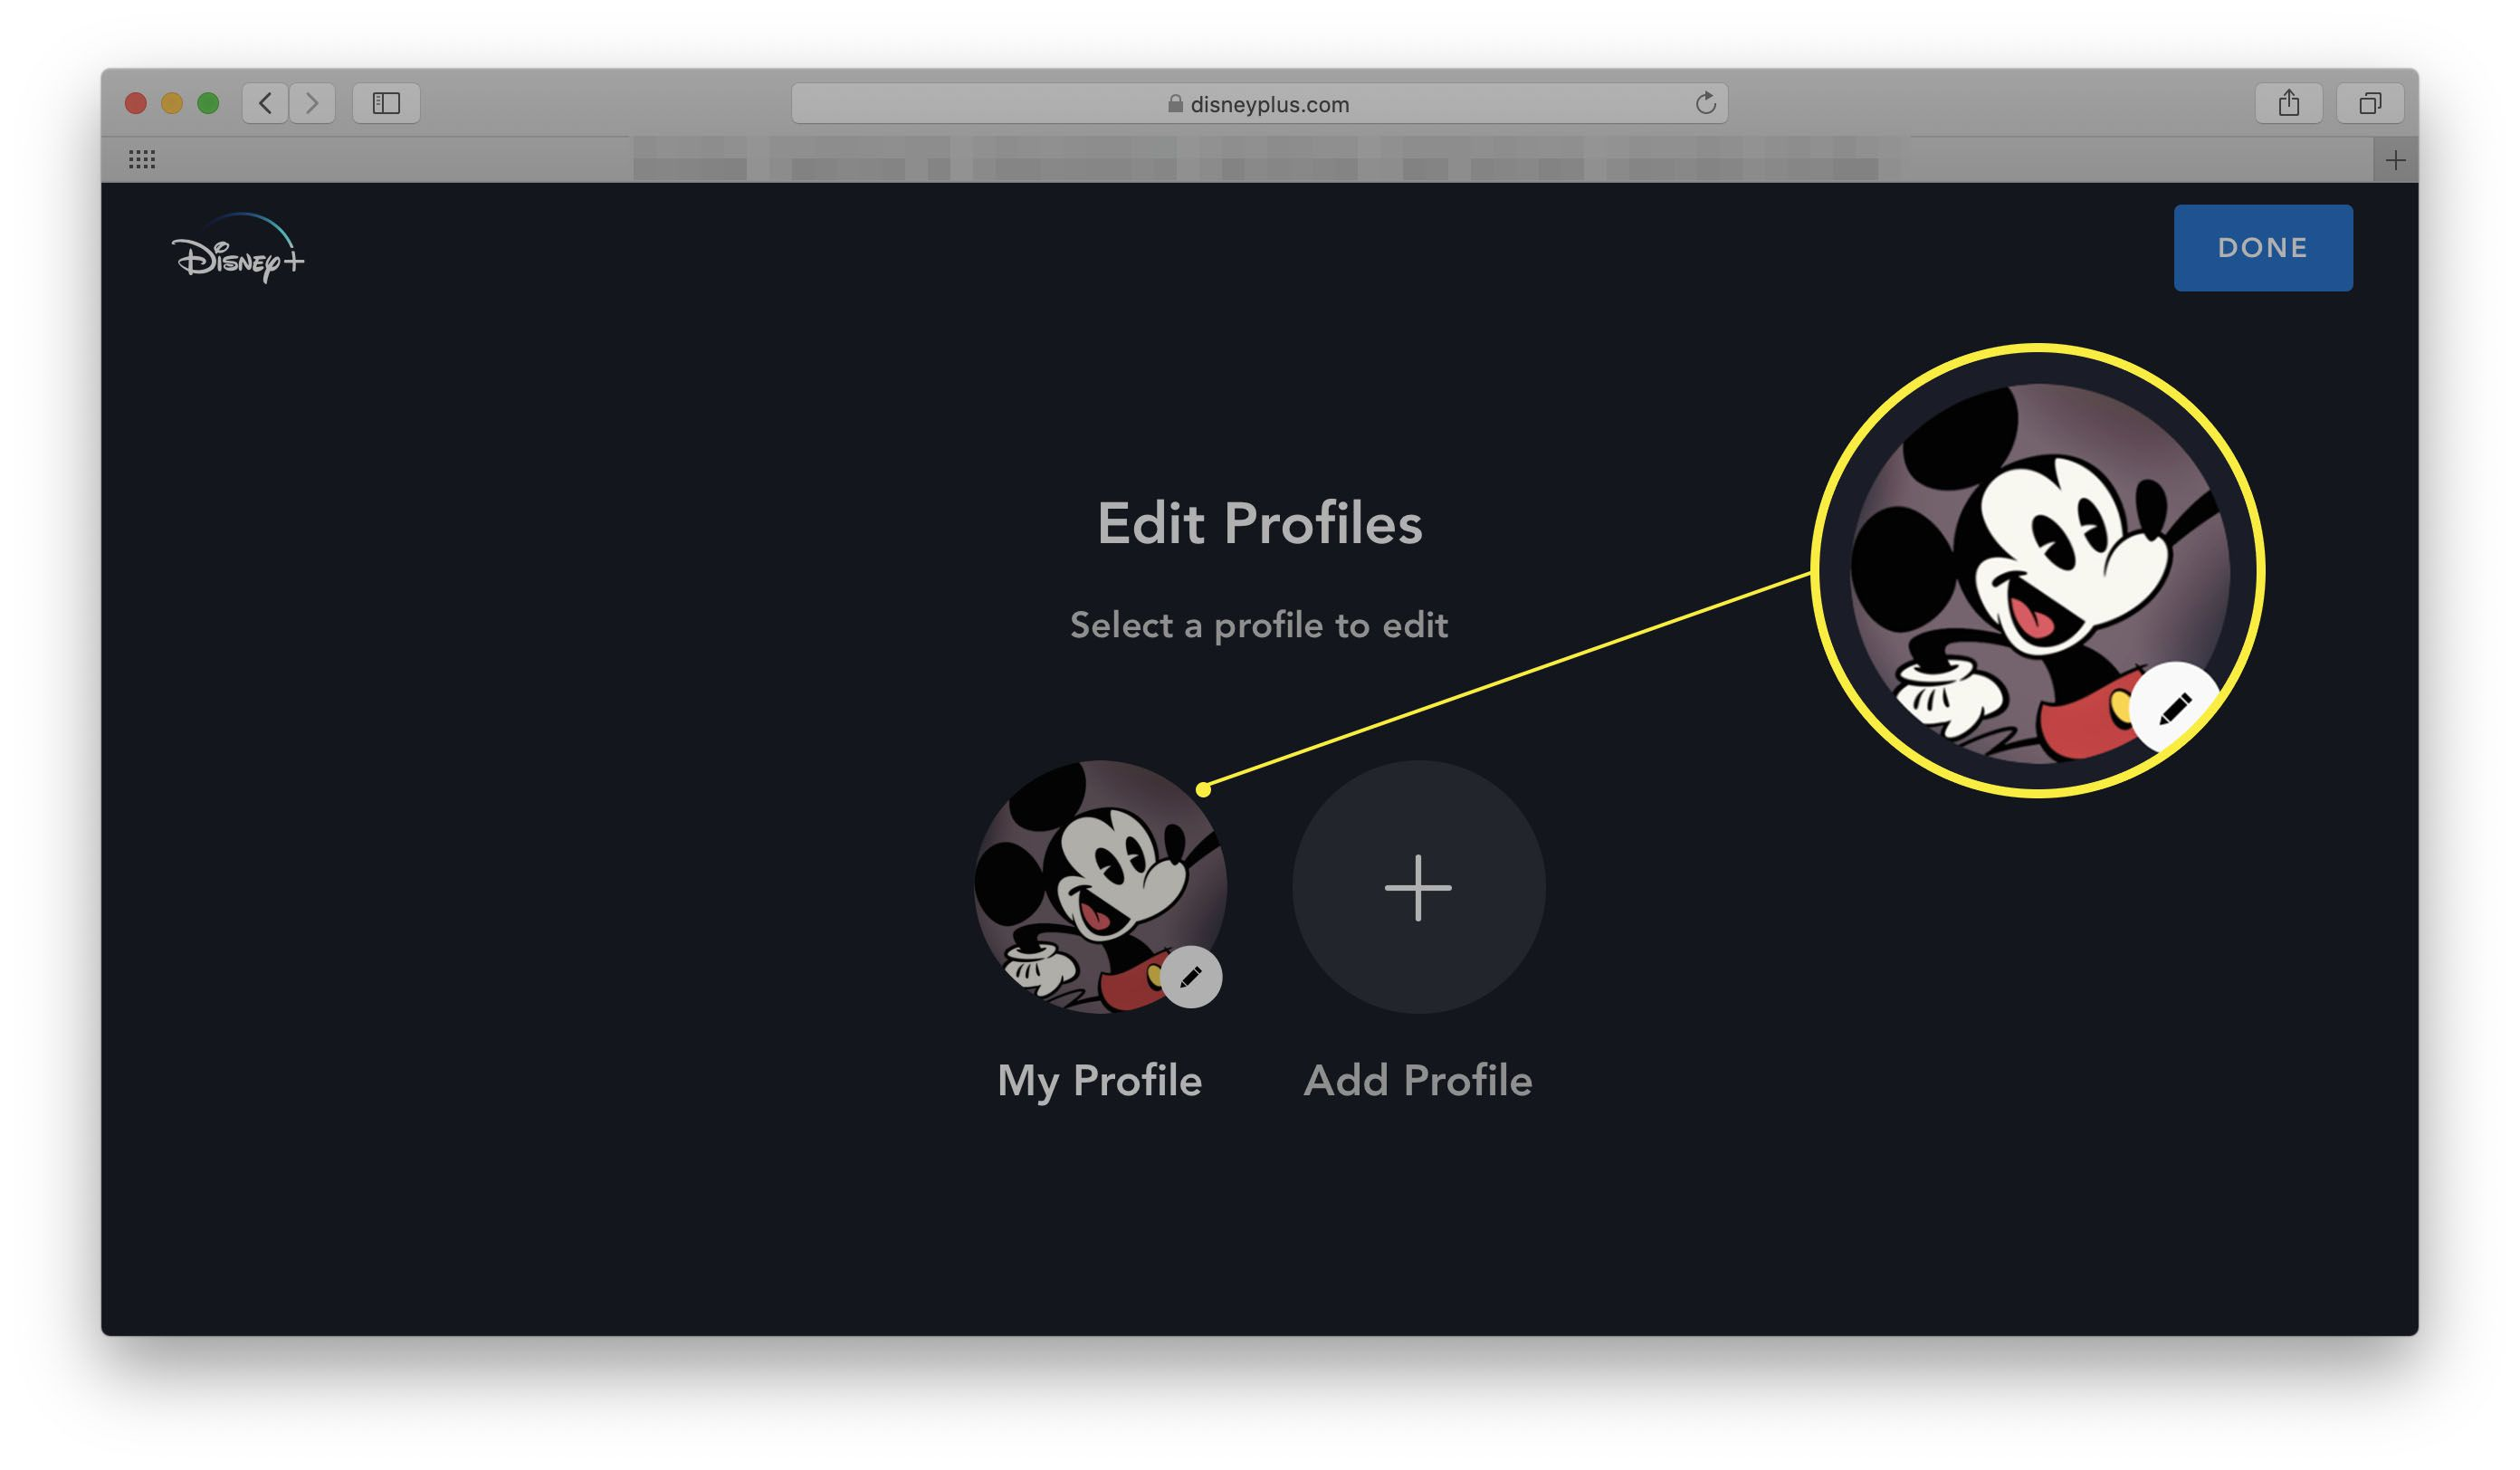 Disney+ with My Profile highlighted